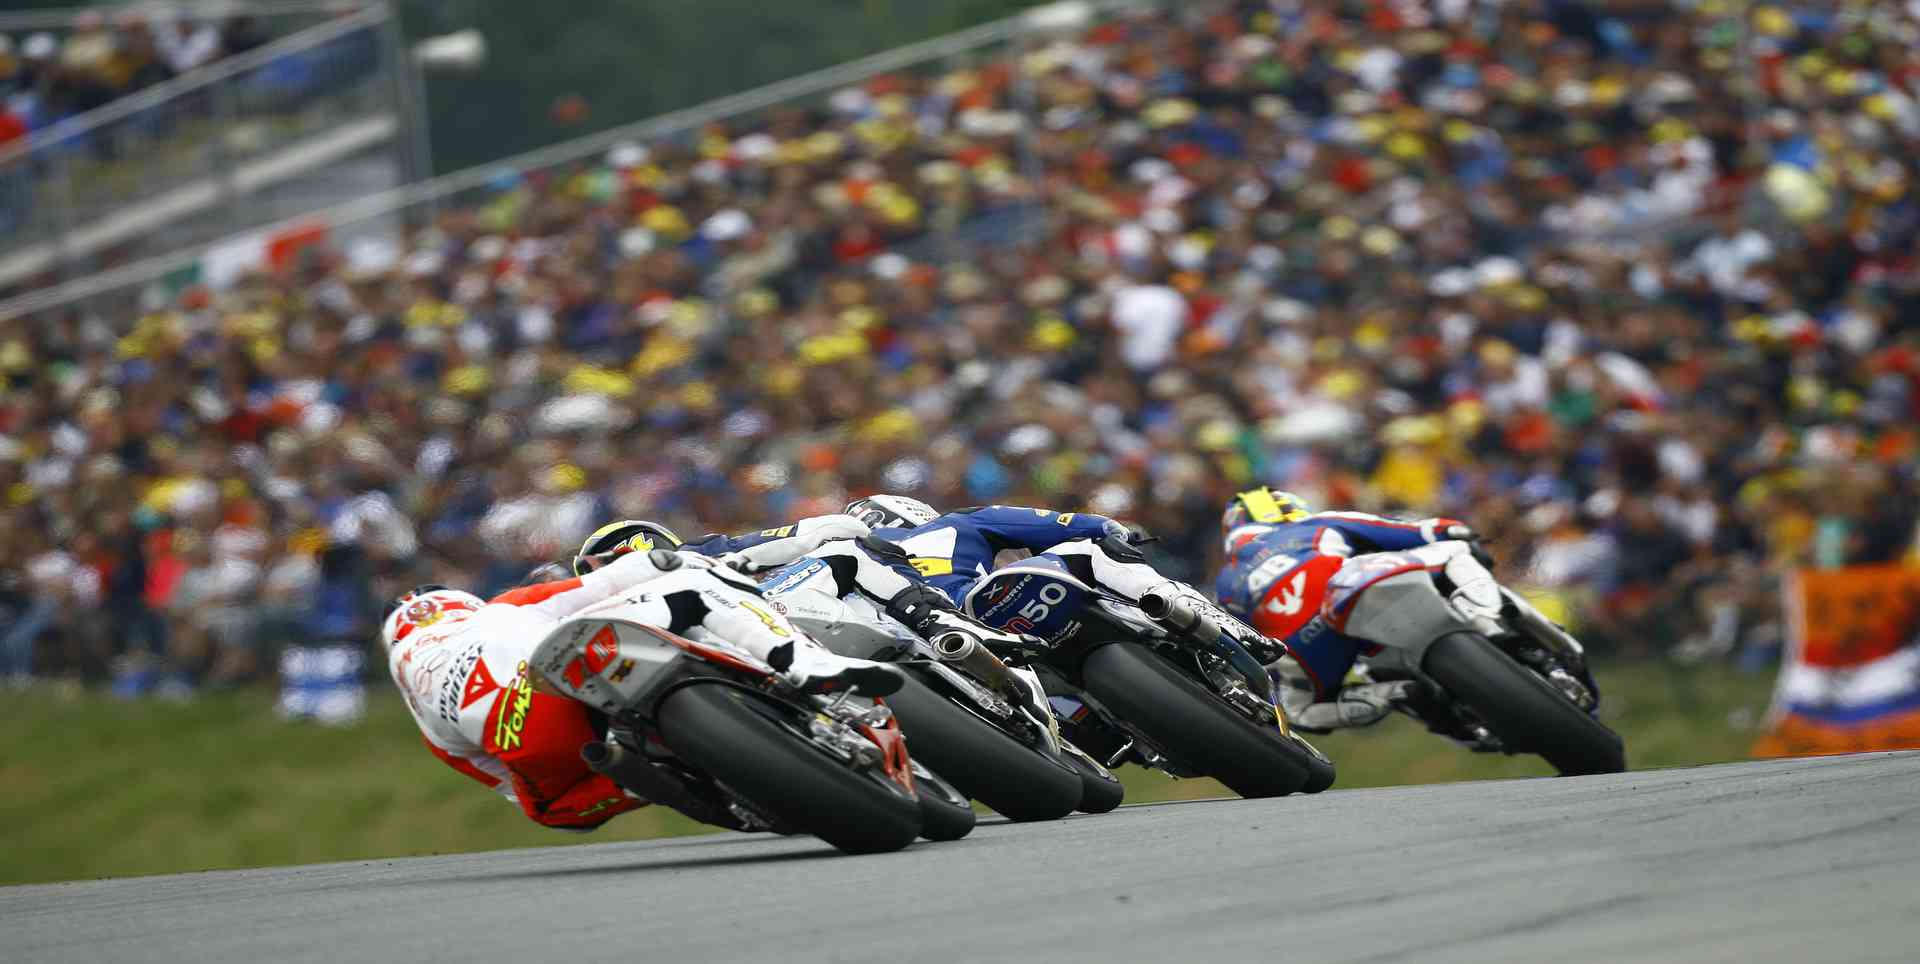 2018-superbike-world-championship-schedule